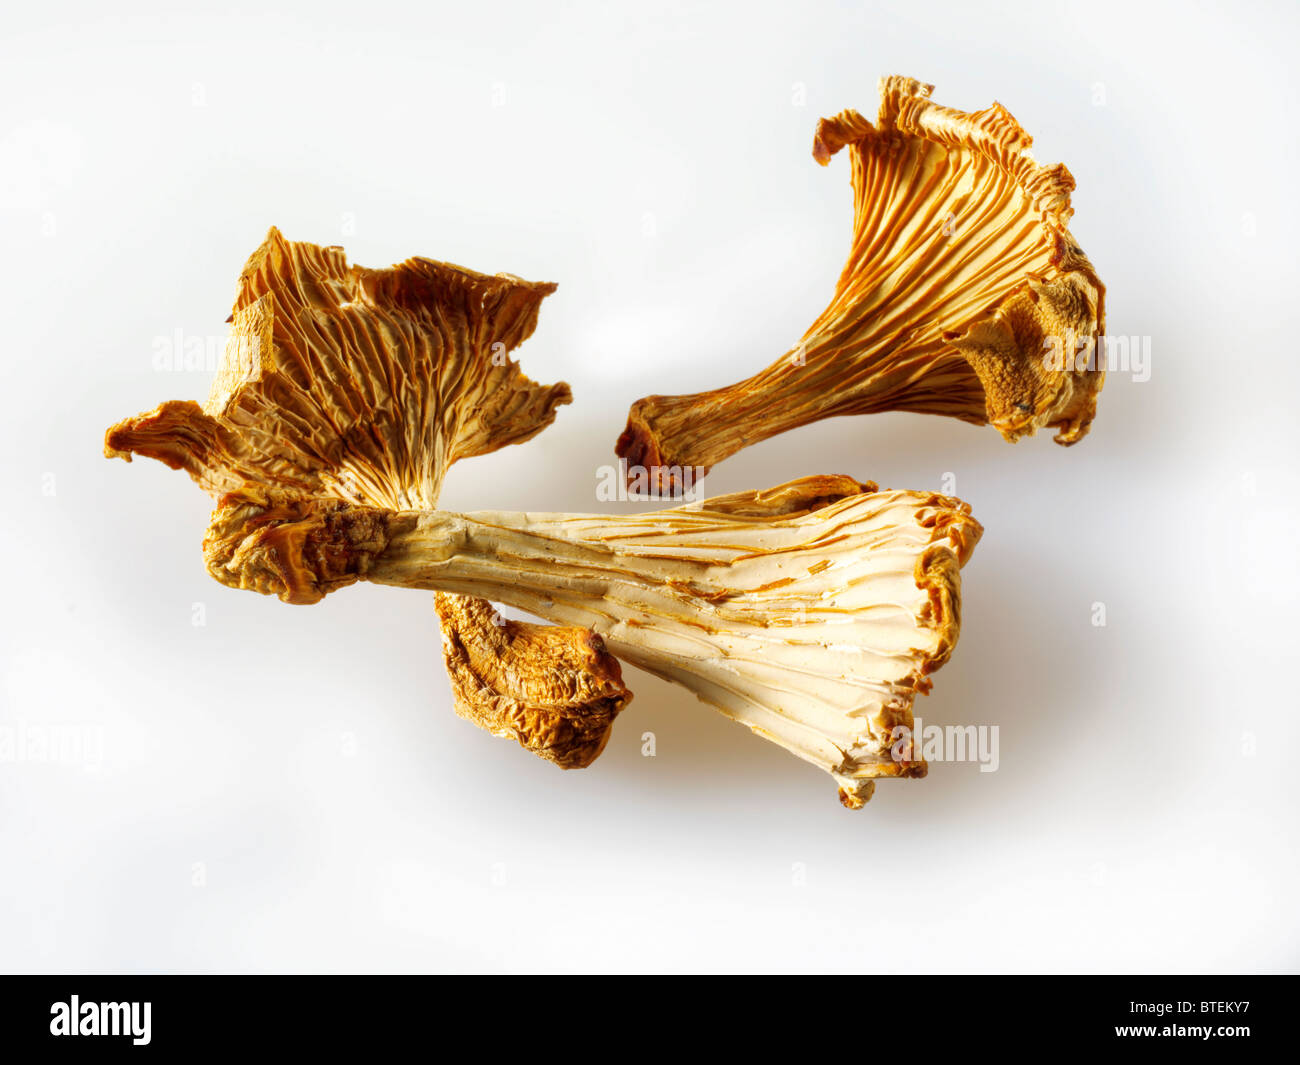 Dried Chanterelle mushrooms - Stock Image